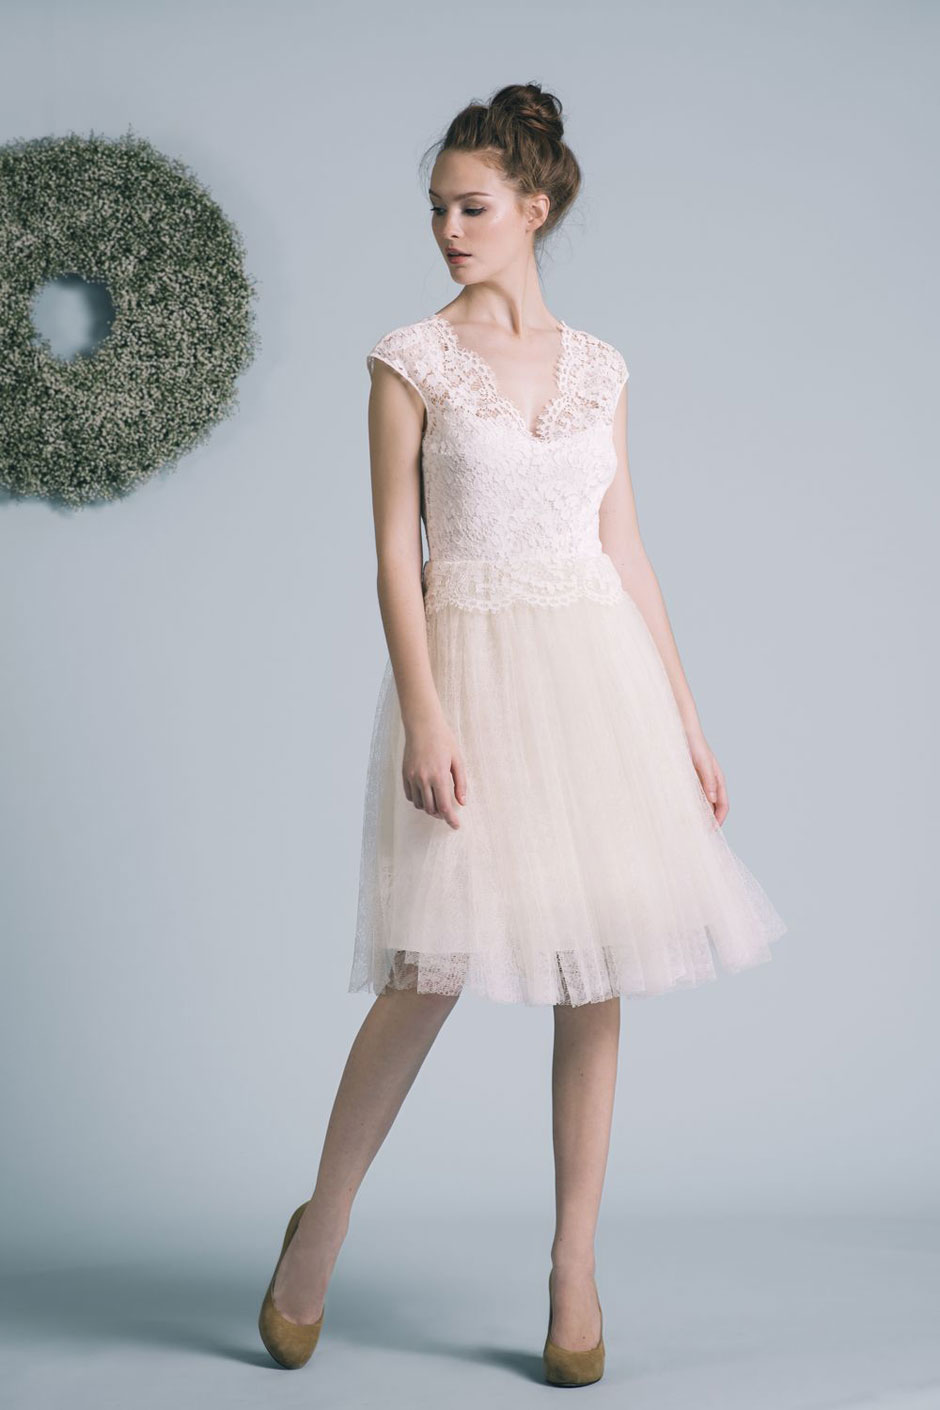 15 Made In France Short Wedding Dresses Blog Mode En France